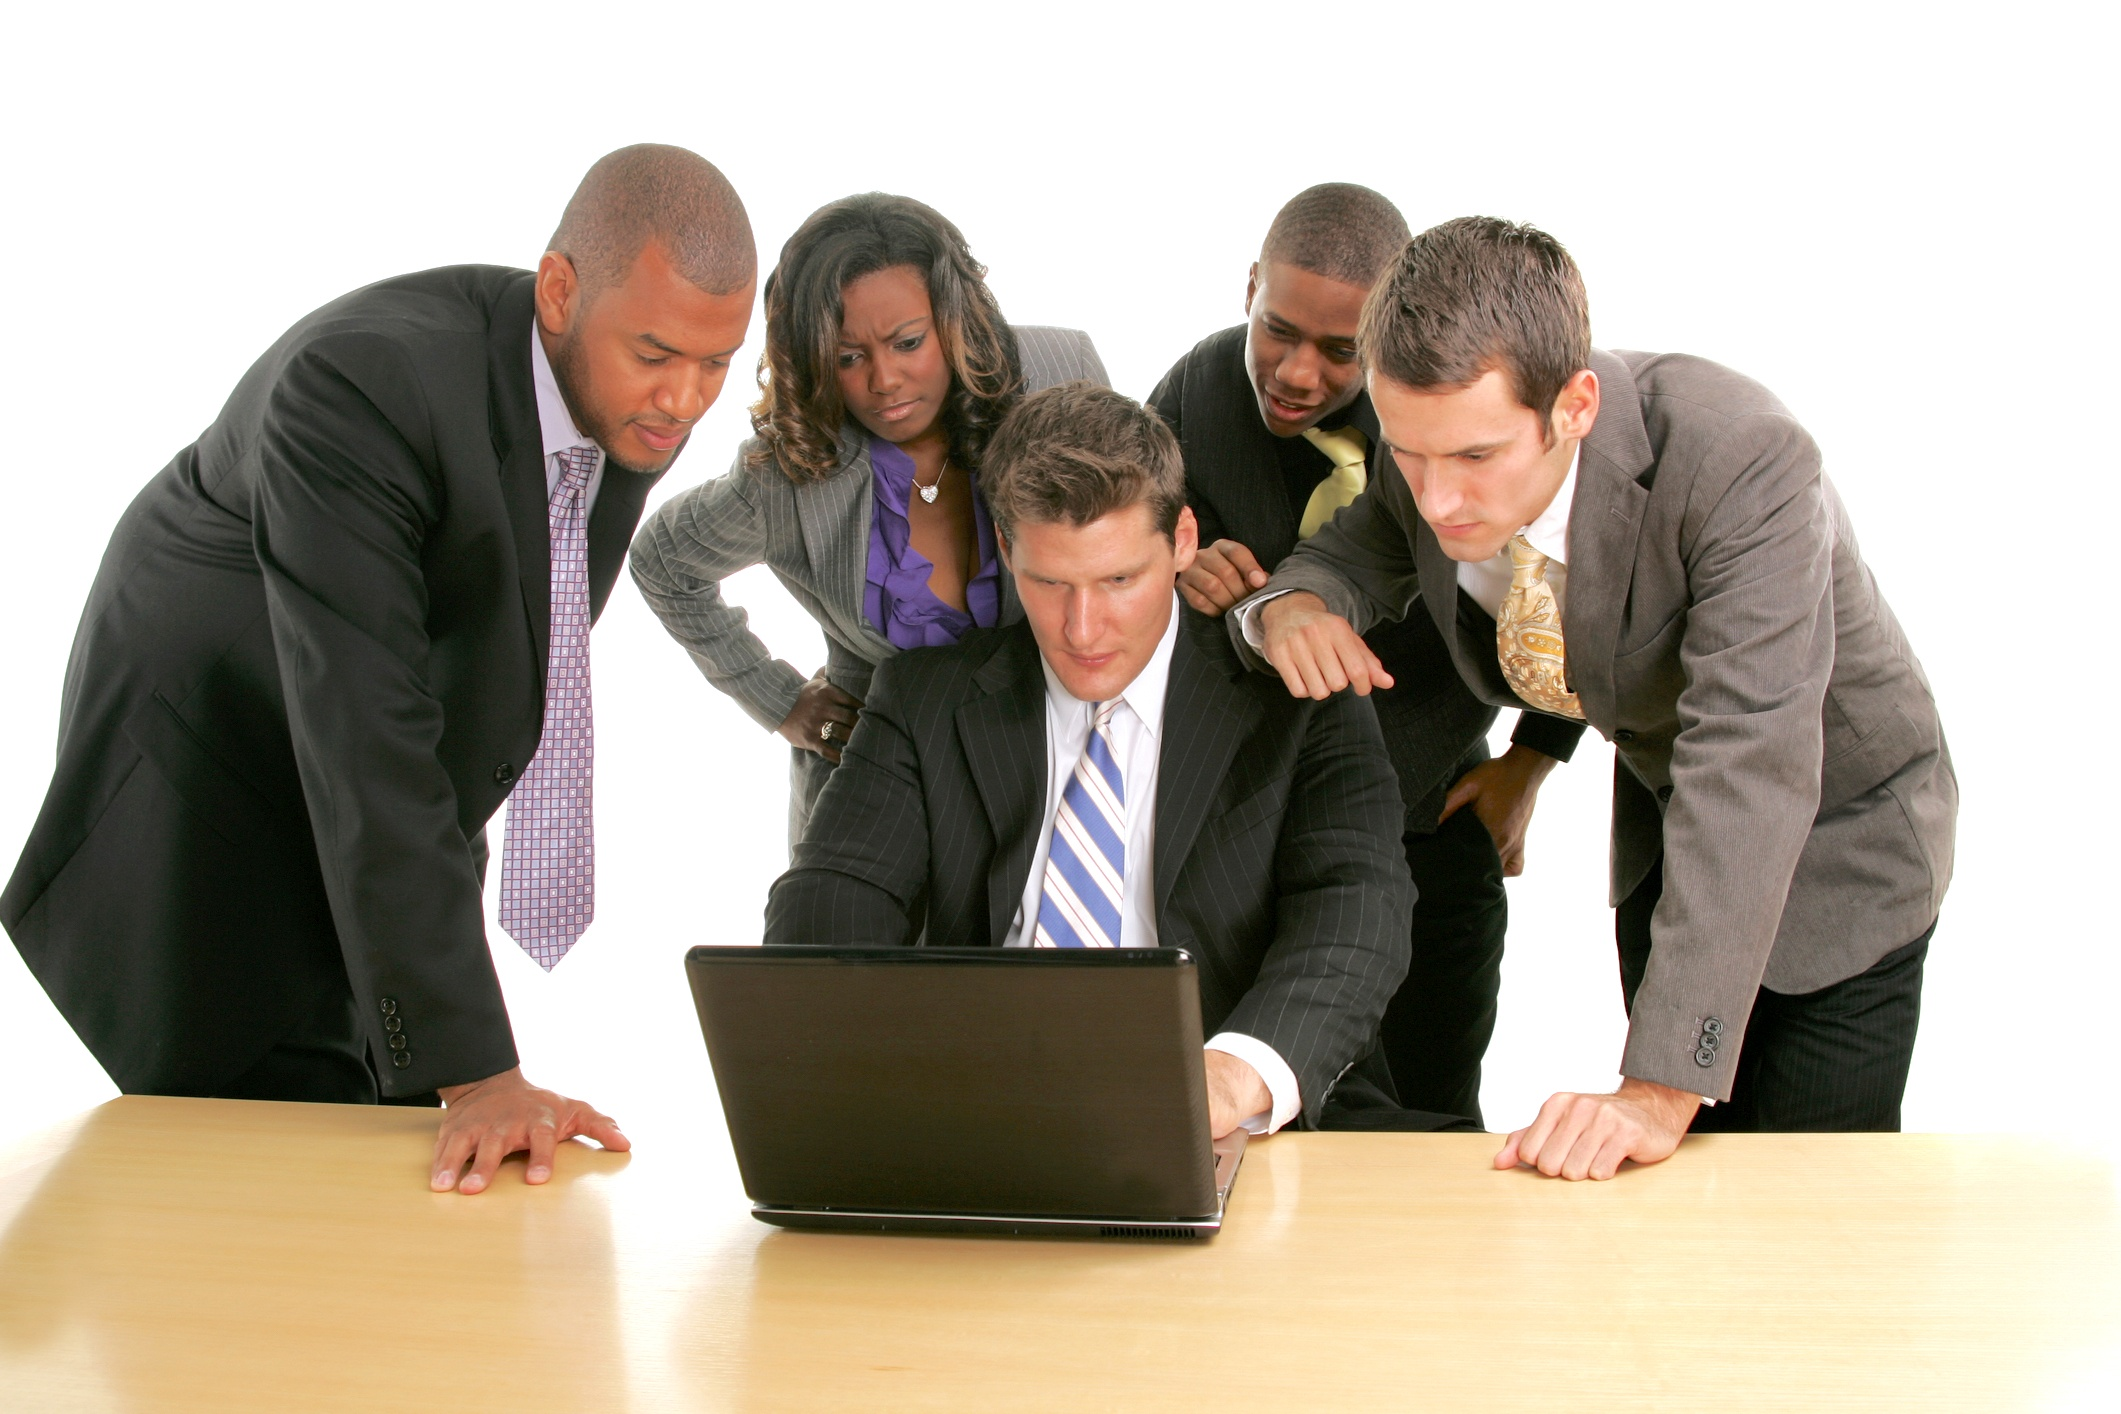 Is this your experience of a video conference meeting?